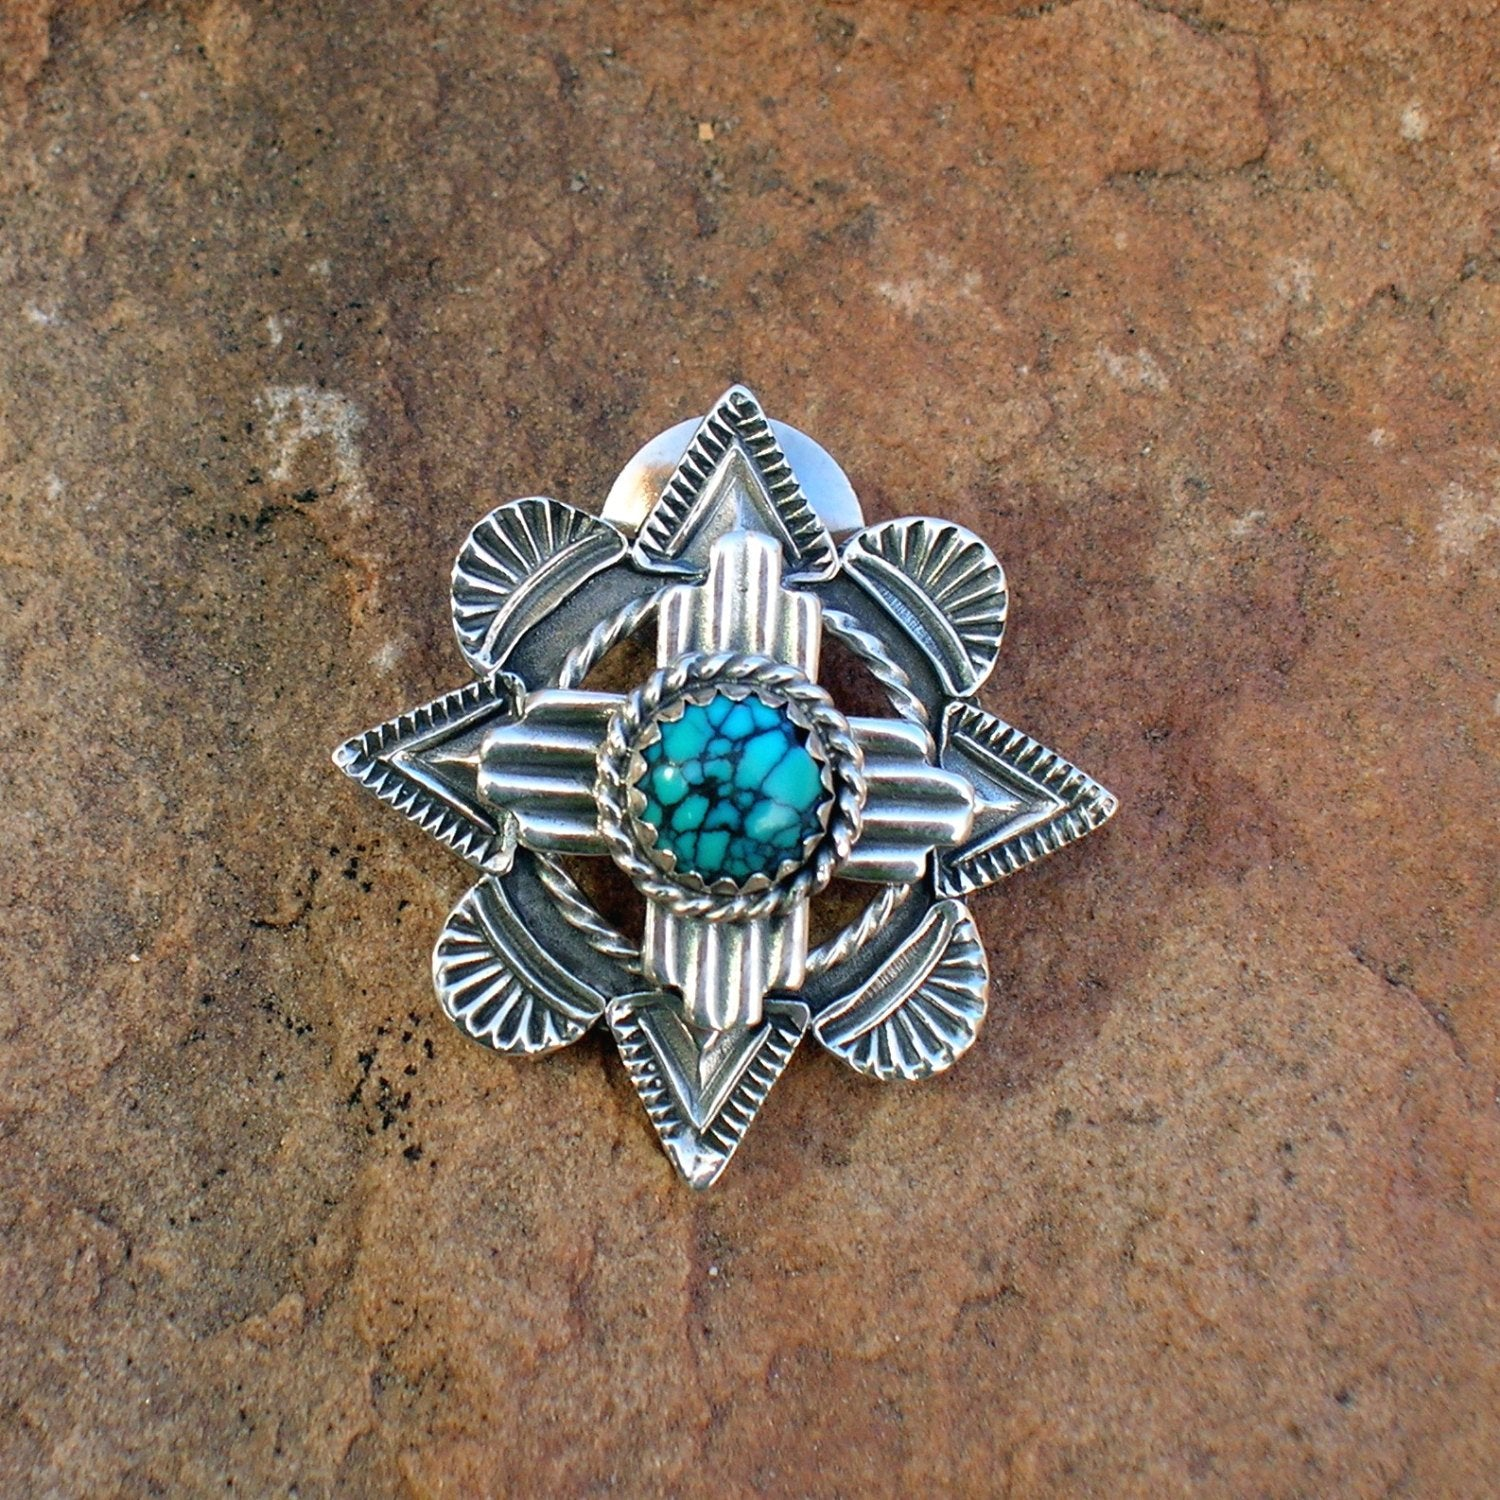 Zia Symbol Over Mission Window Lapel Pin